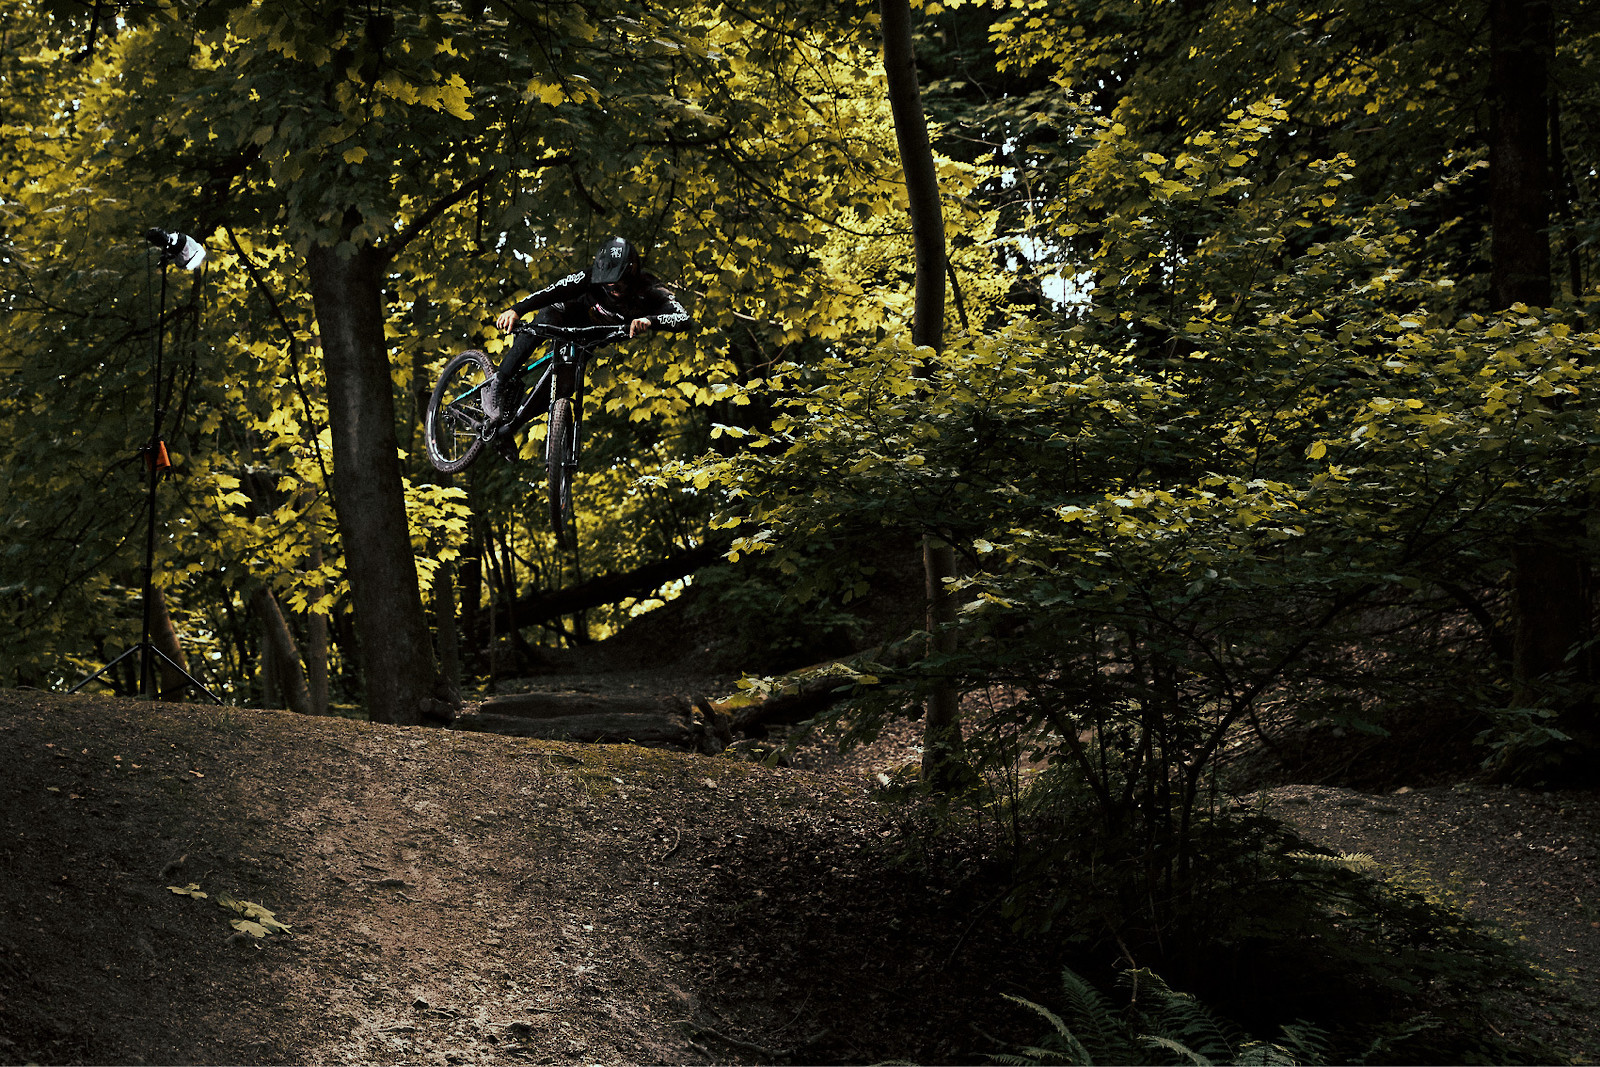 Steyning Trails - DomKniight100 - Mountain Biking Pictures - Vital MTB